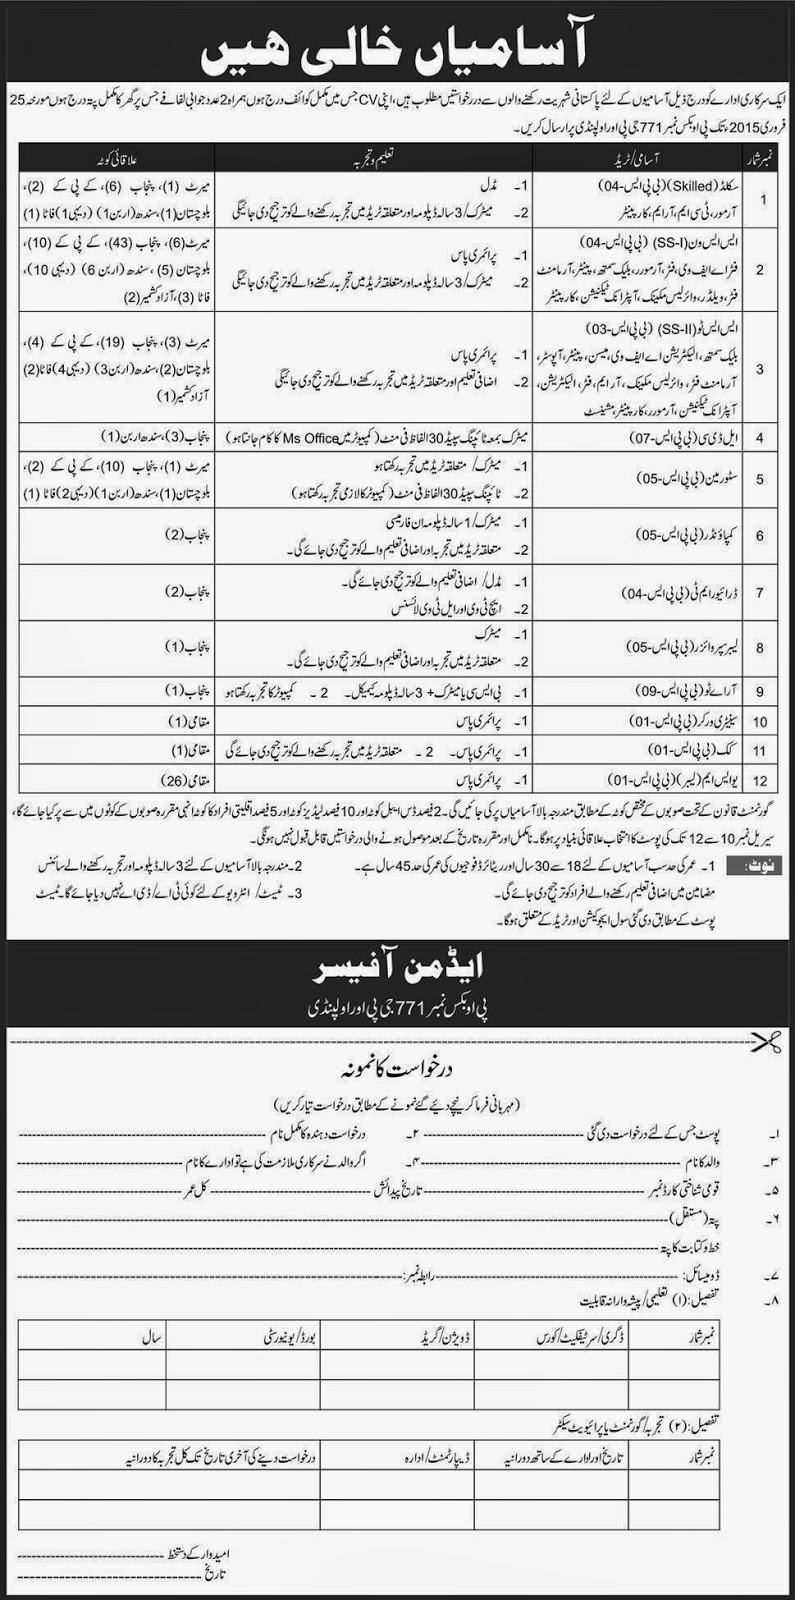 Govt Jobs in Rawalpindi P.O Box no 771